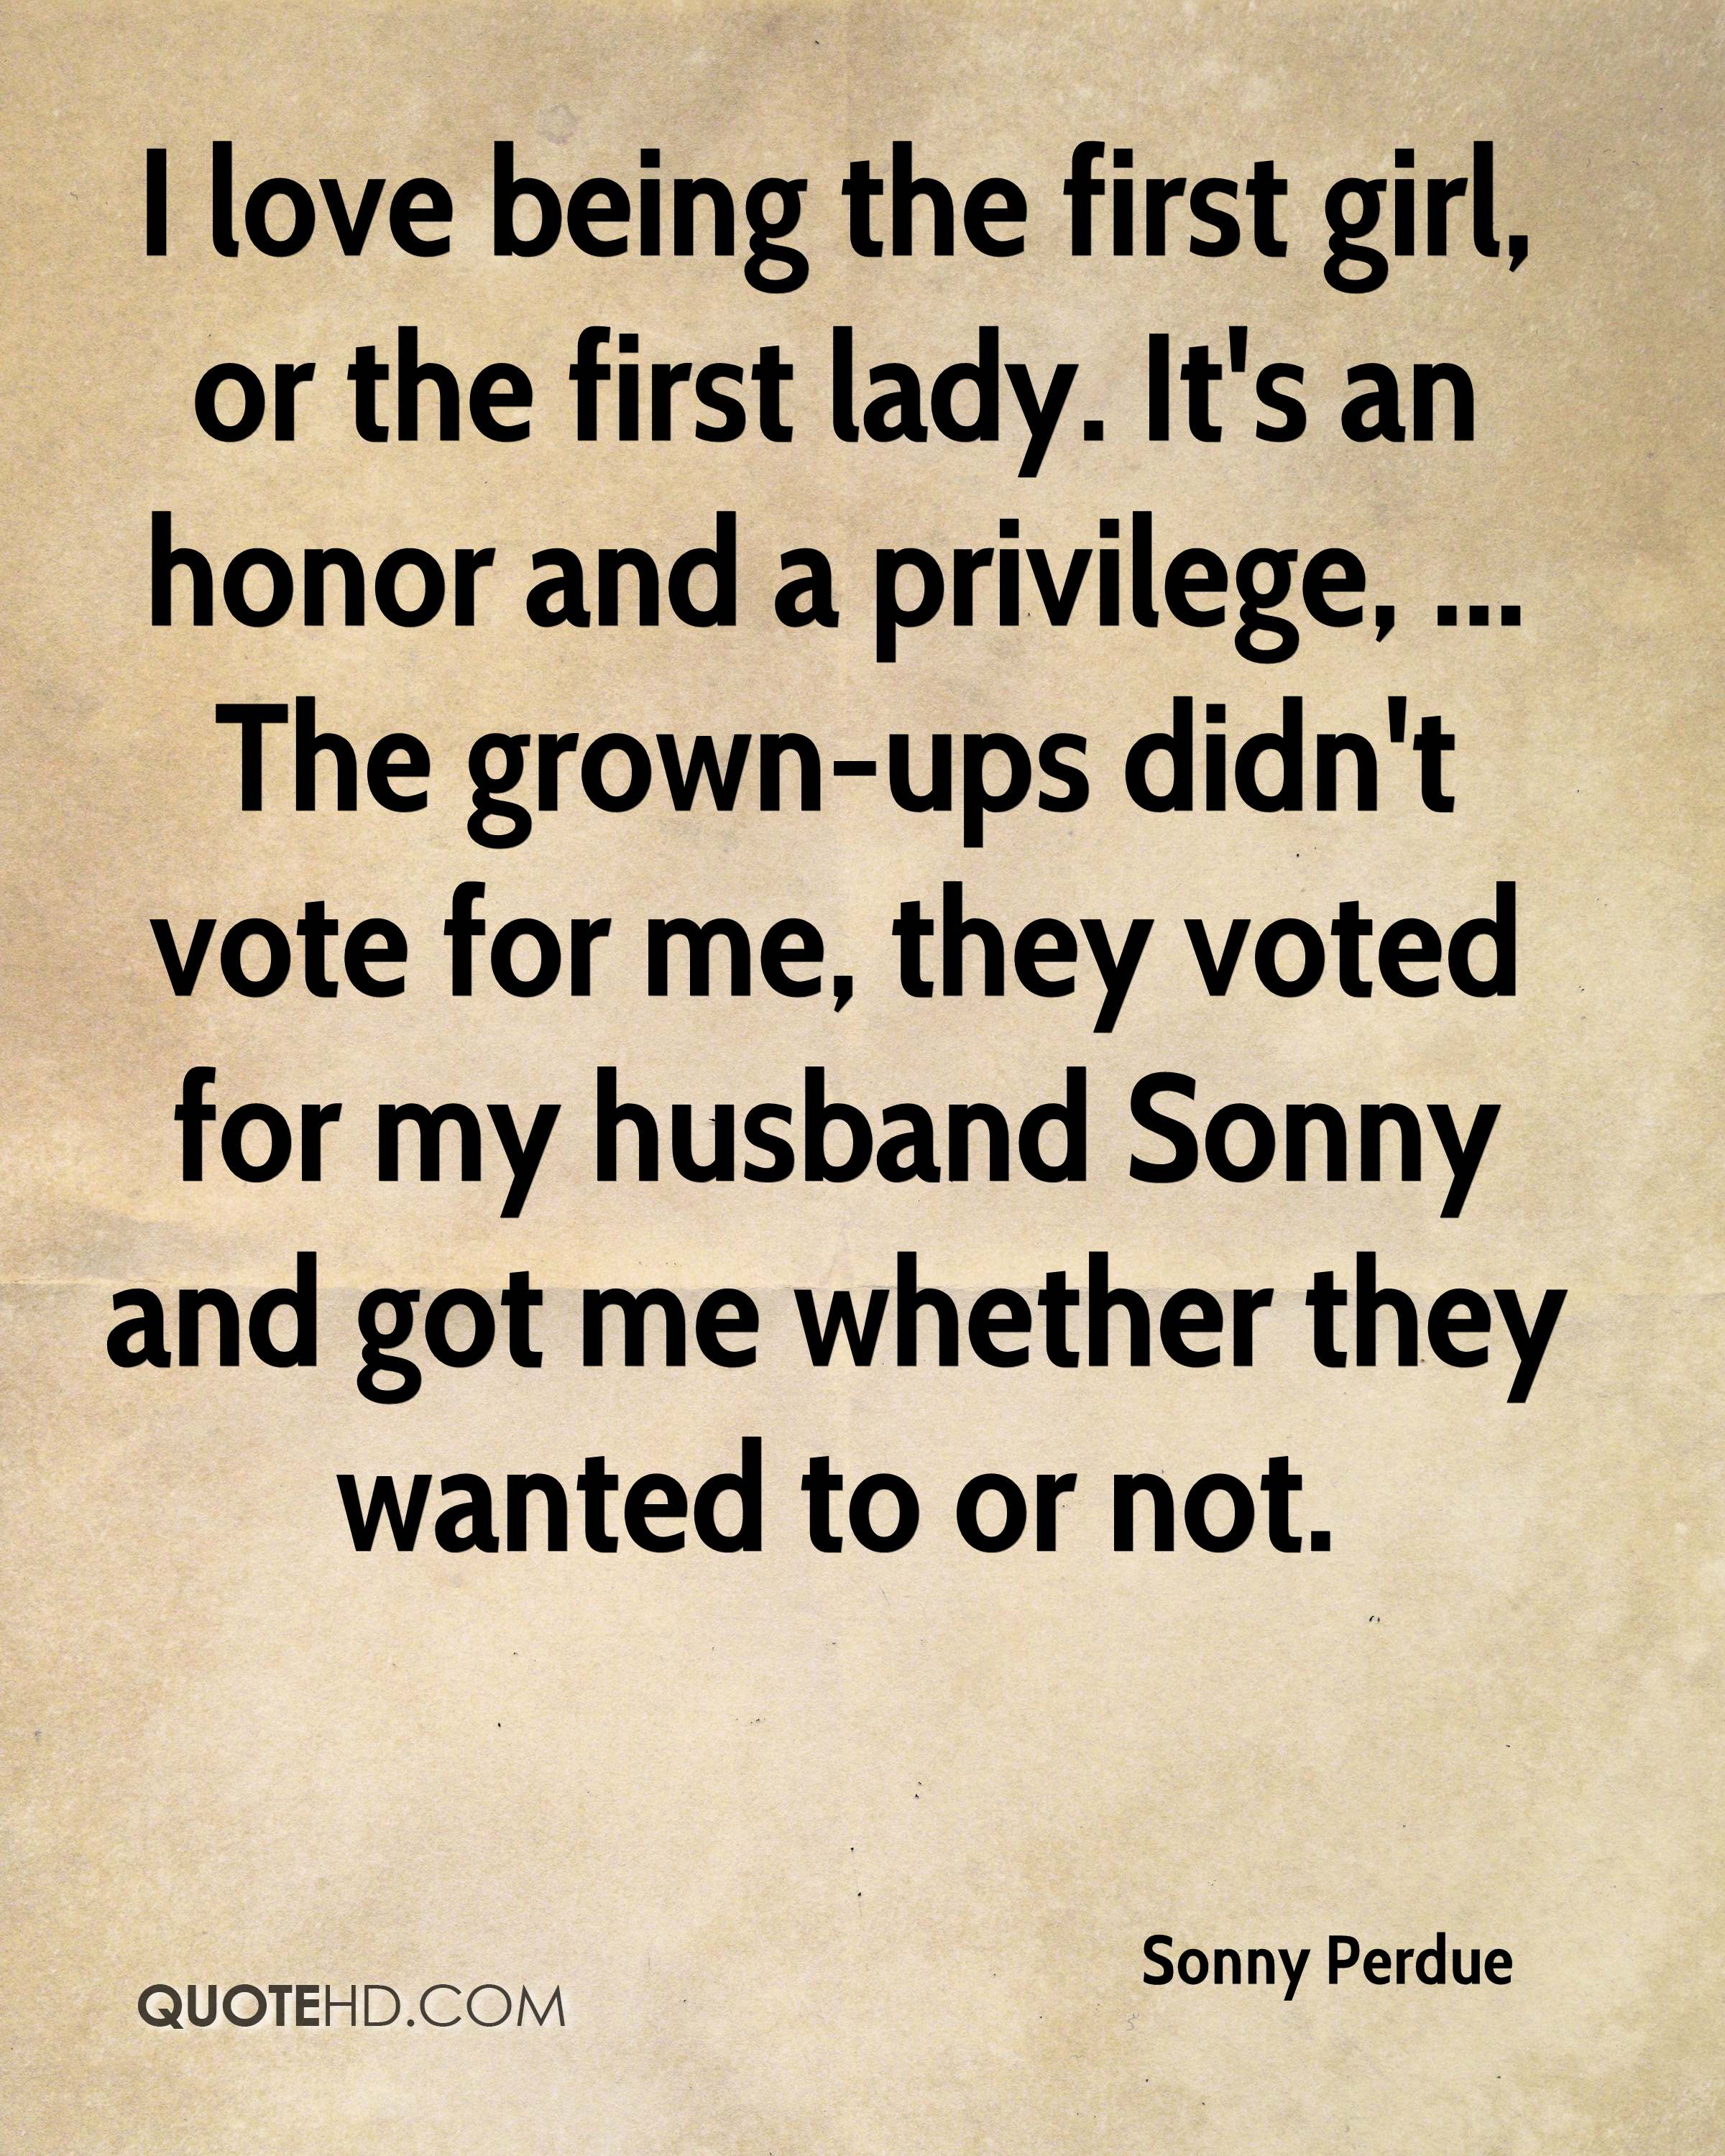 I love being the first girl, or the first lady. It's an honor and a privilege, ... The grown-ups didn't vote for me, they voted for my husband Sonny and got me whether they wanted to or not.